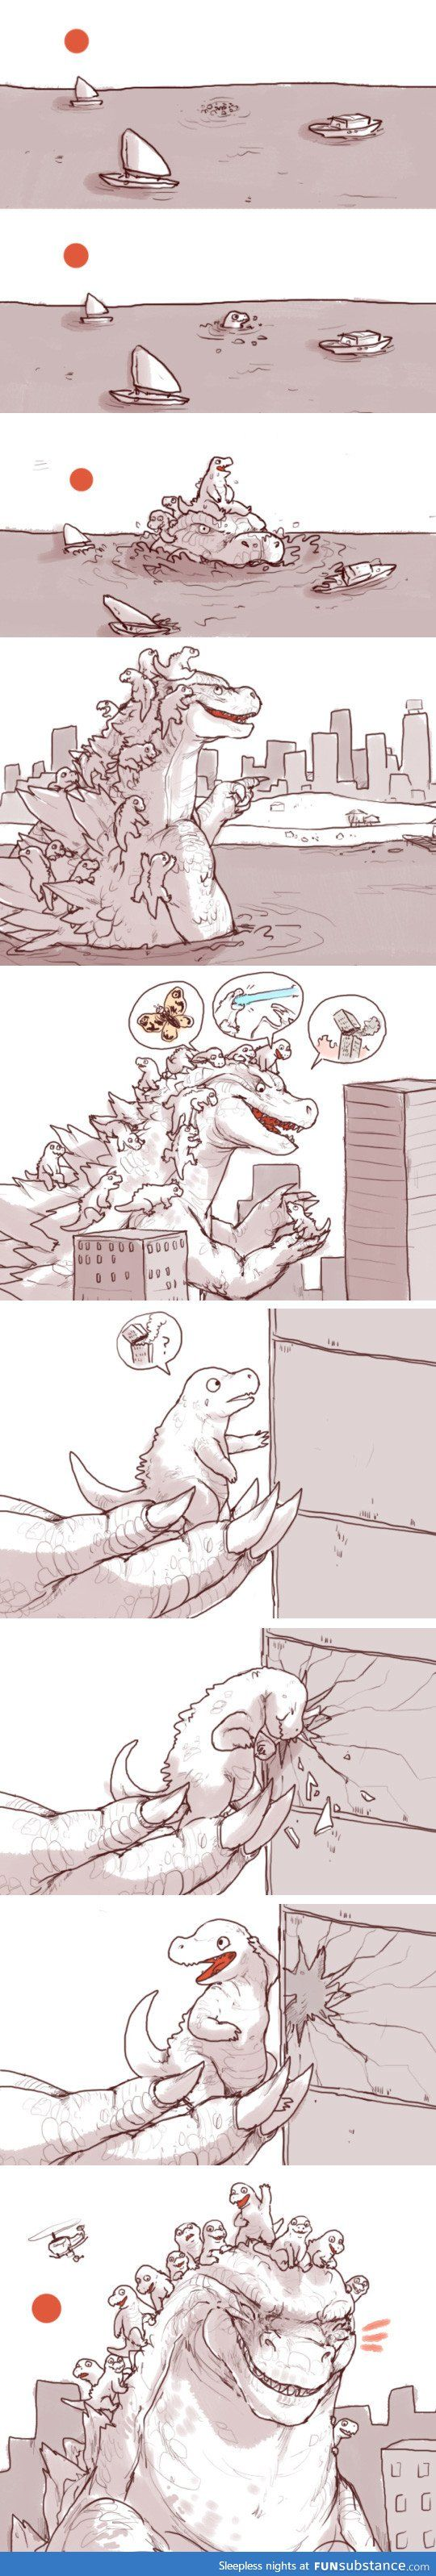 That is cute!.Godzilla's expression in the last panel is priceless. Proud papa.